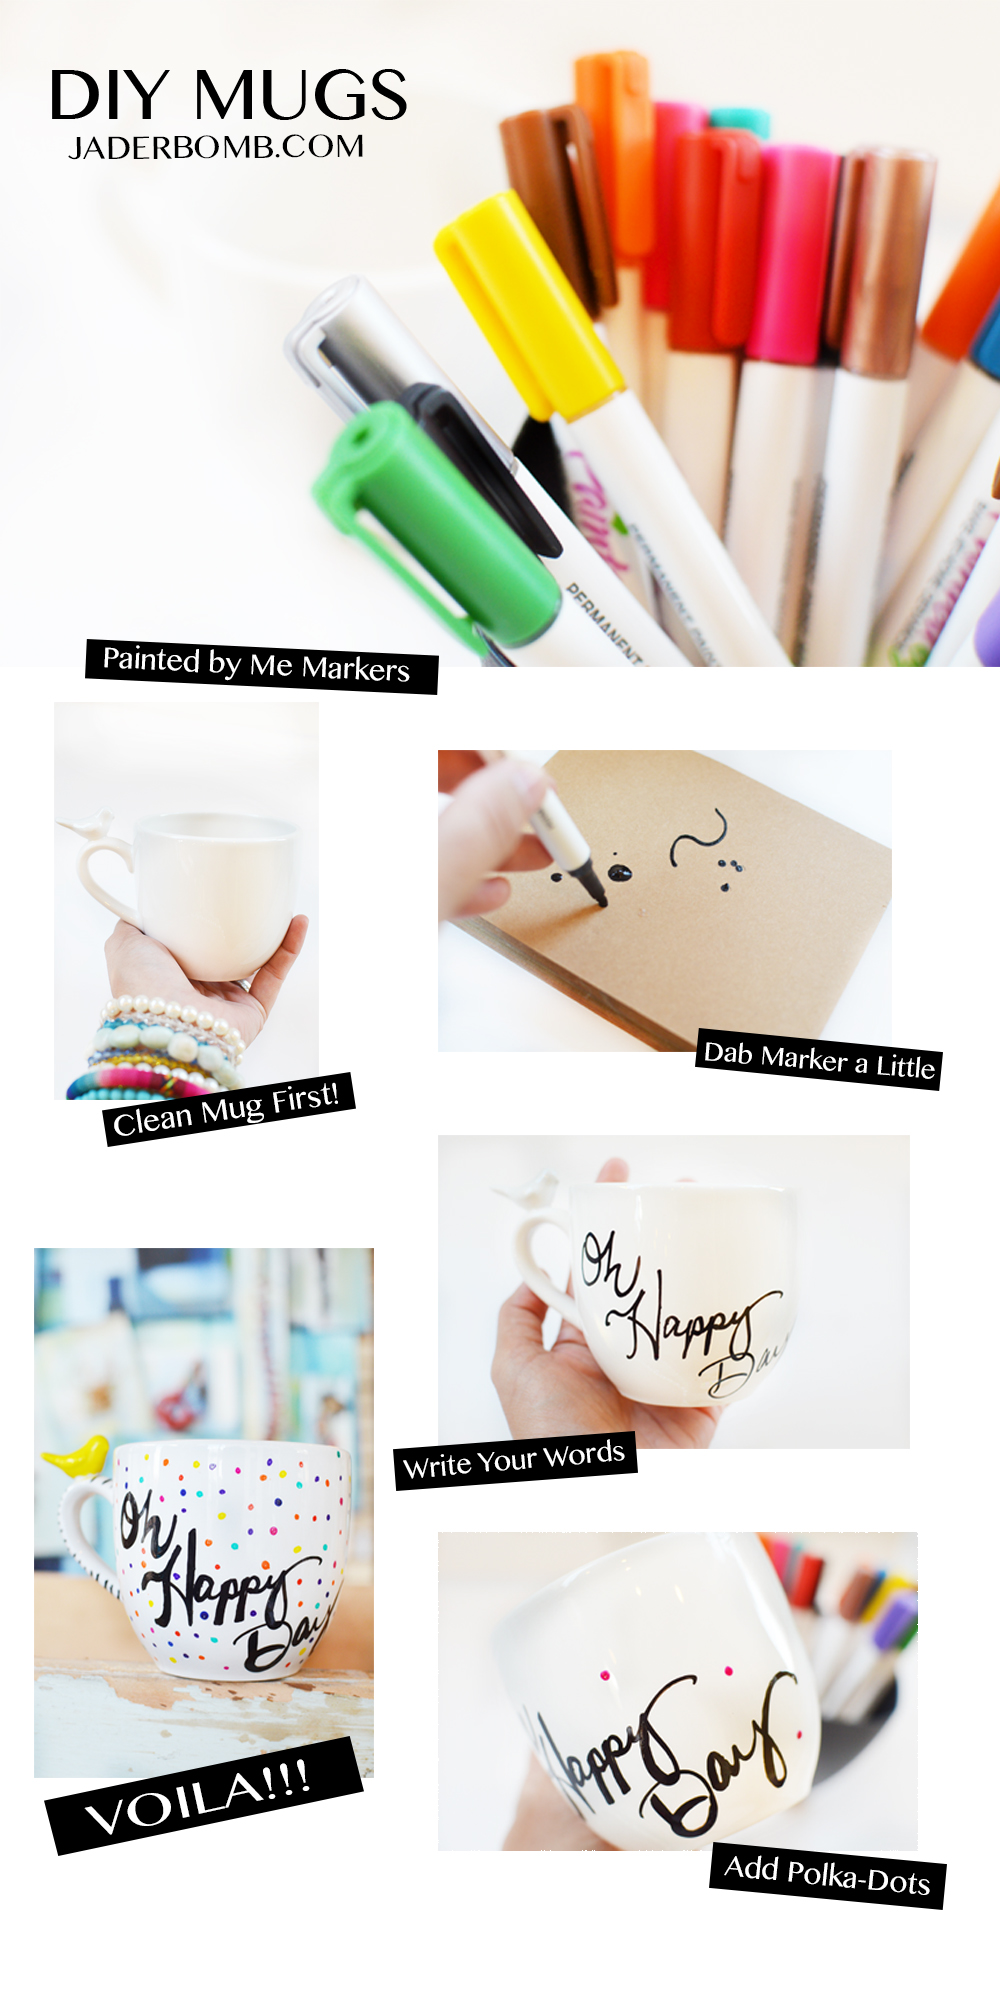 HOW TO PAINT ON MUGS